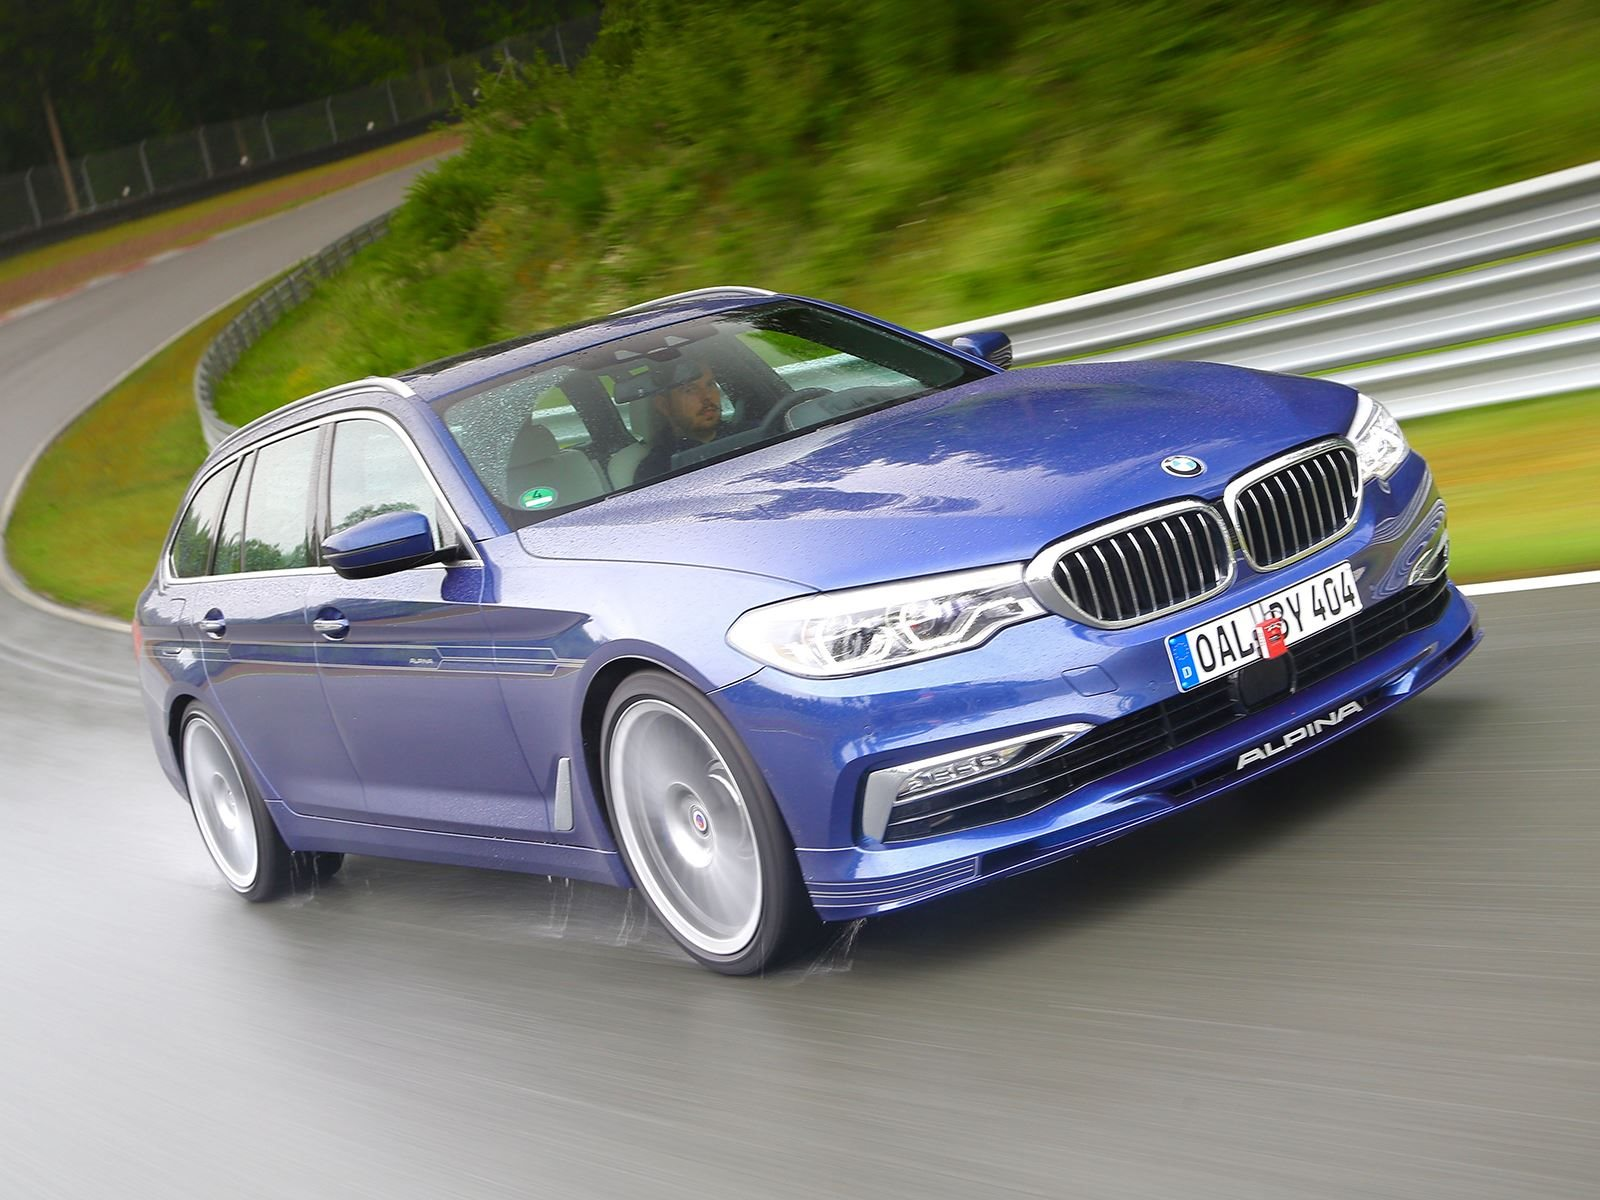 Alpina Reveals World S Fastest Station Wagon With 200 Mph Top Speed Carbuzz